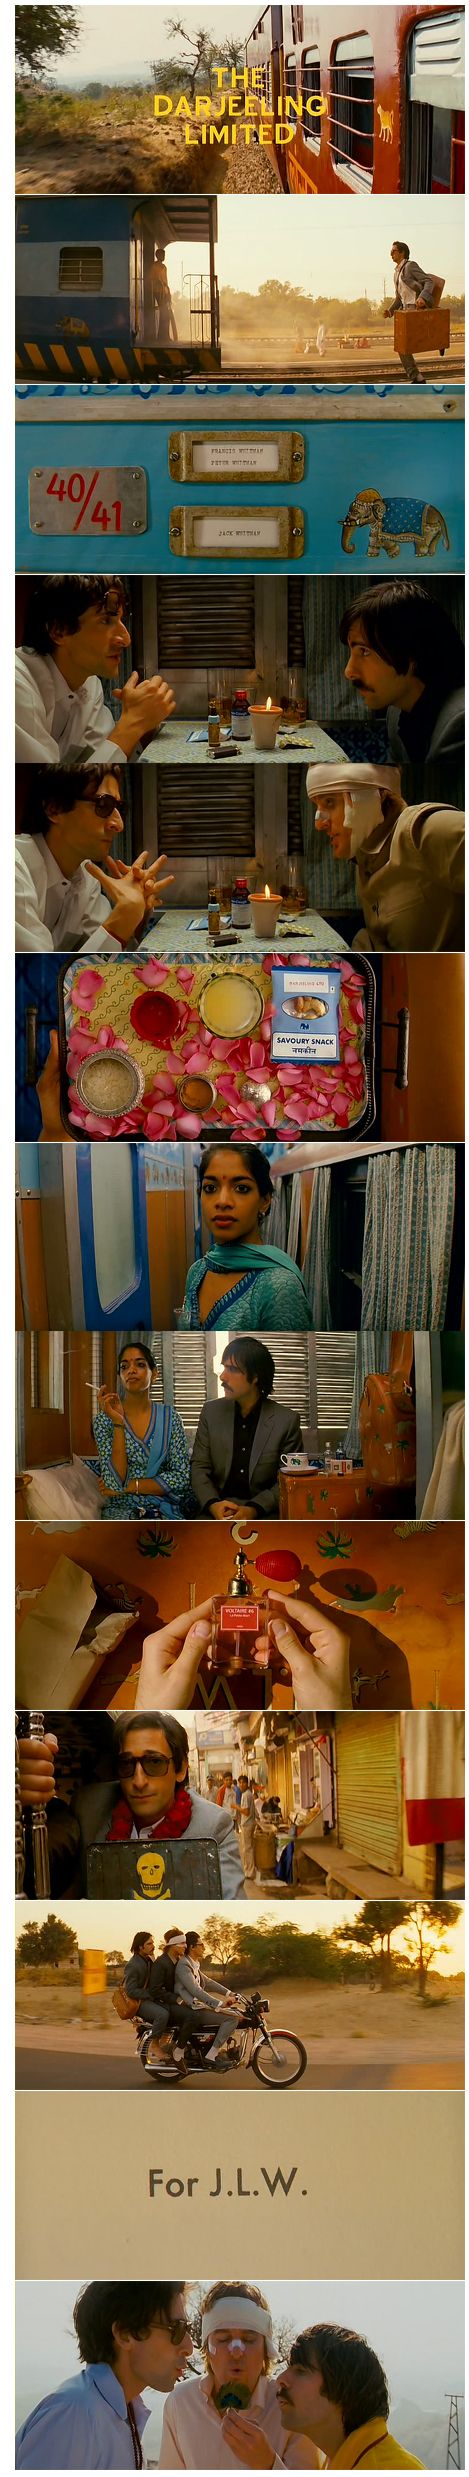 The Darjeeling Limited - Makes me want to go to India.